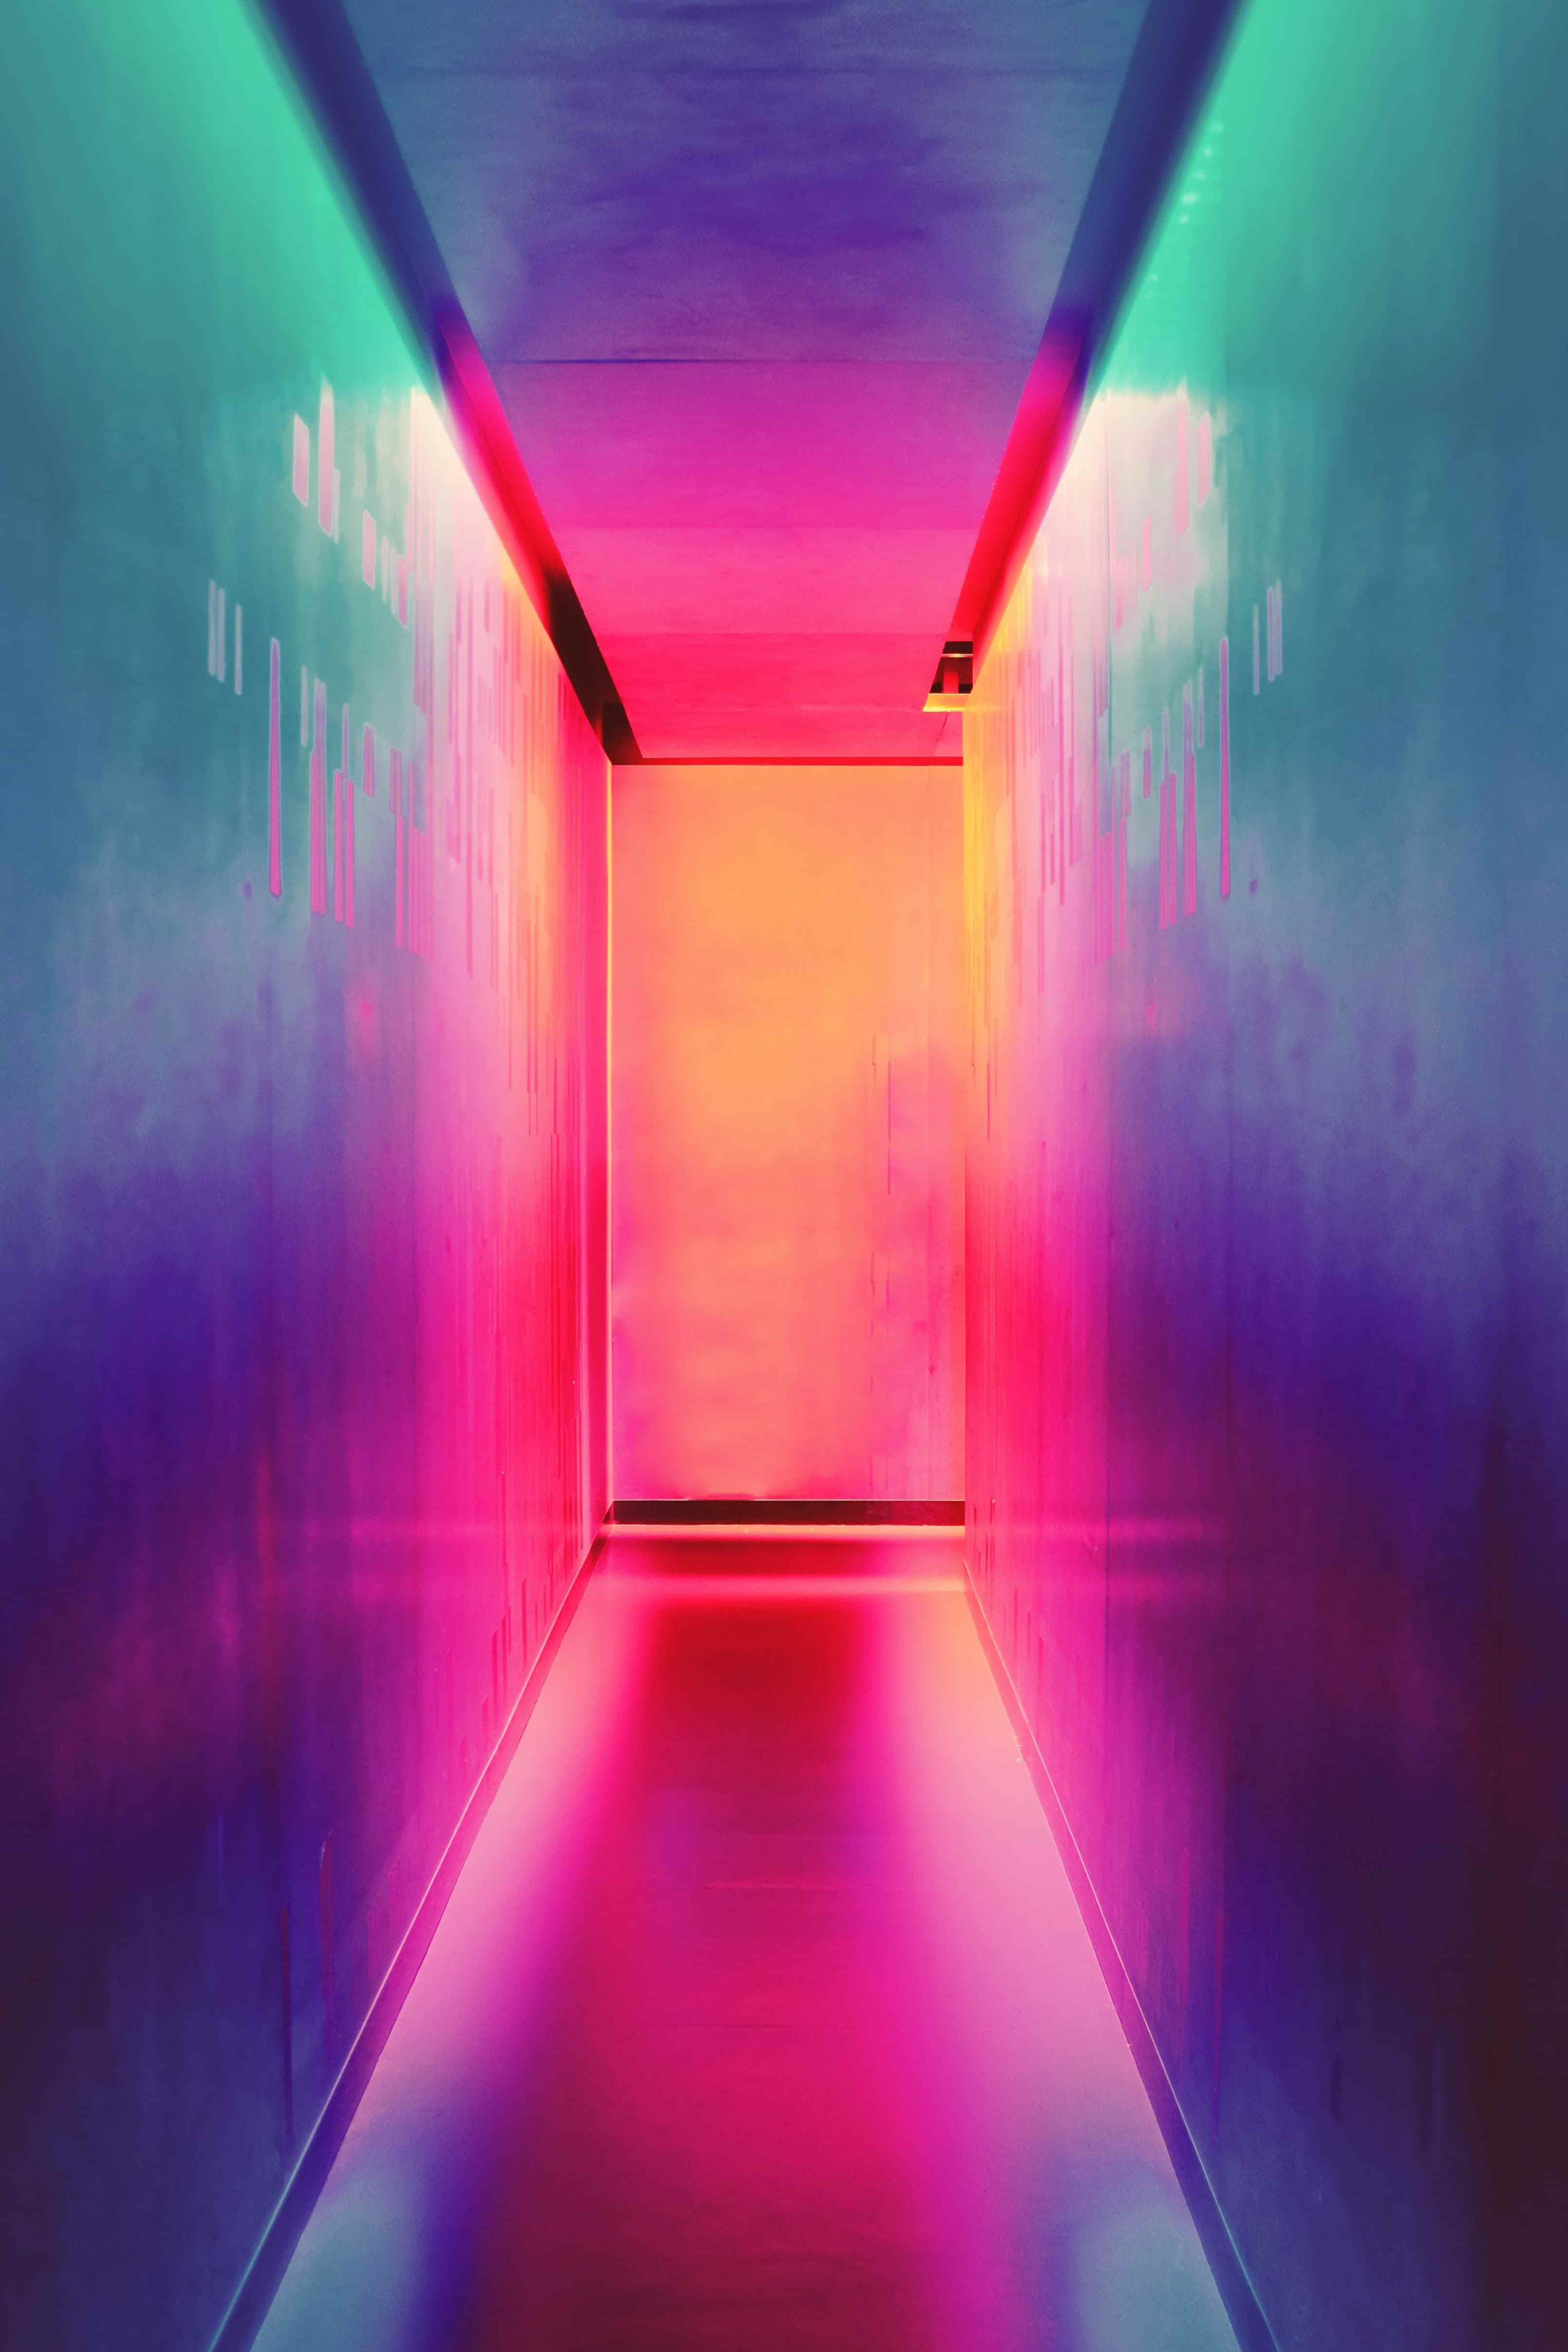 Neon pink and blue corridor leading to door